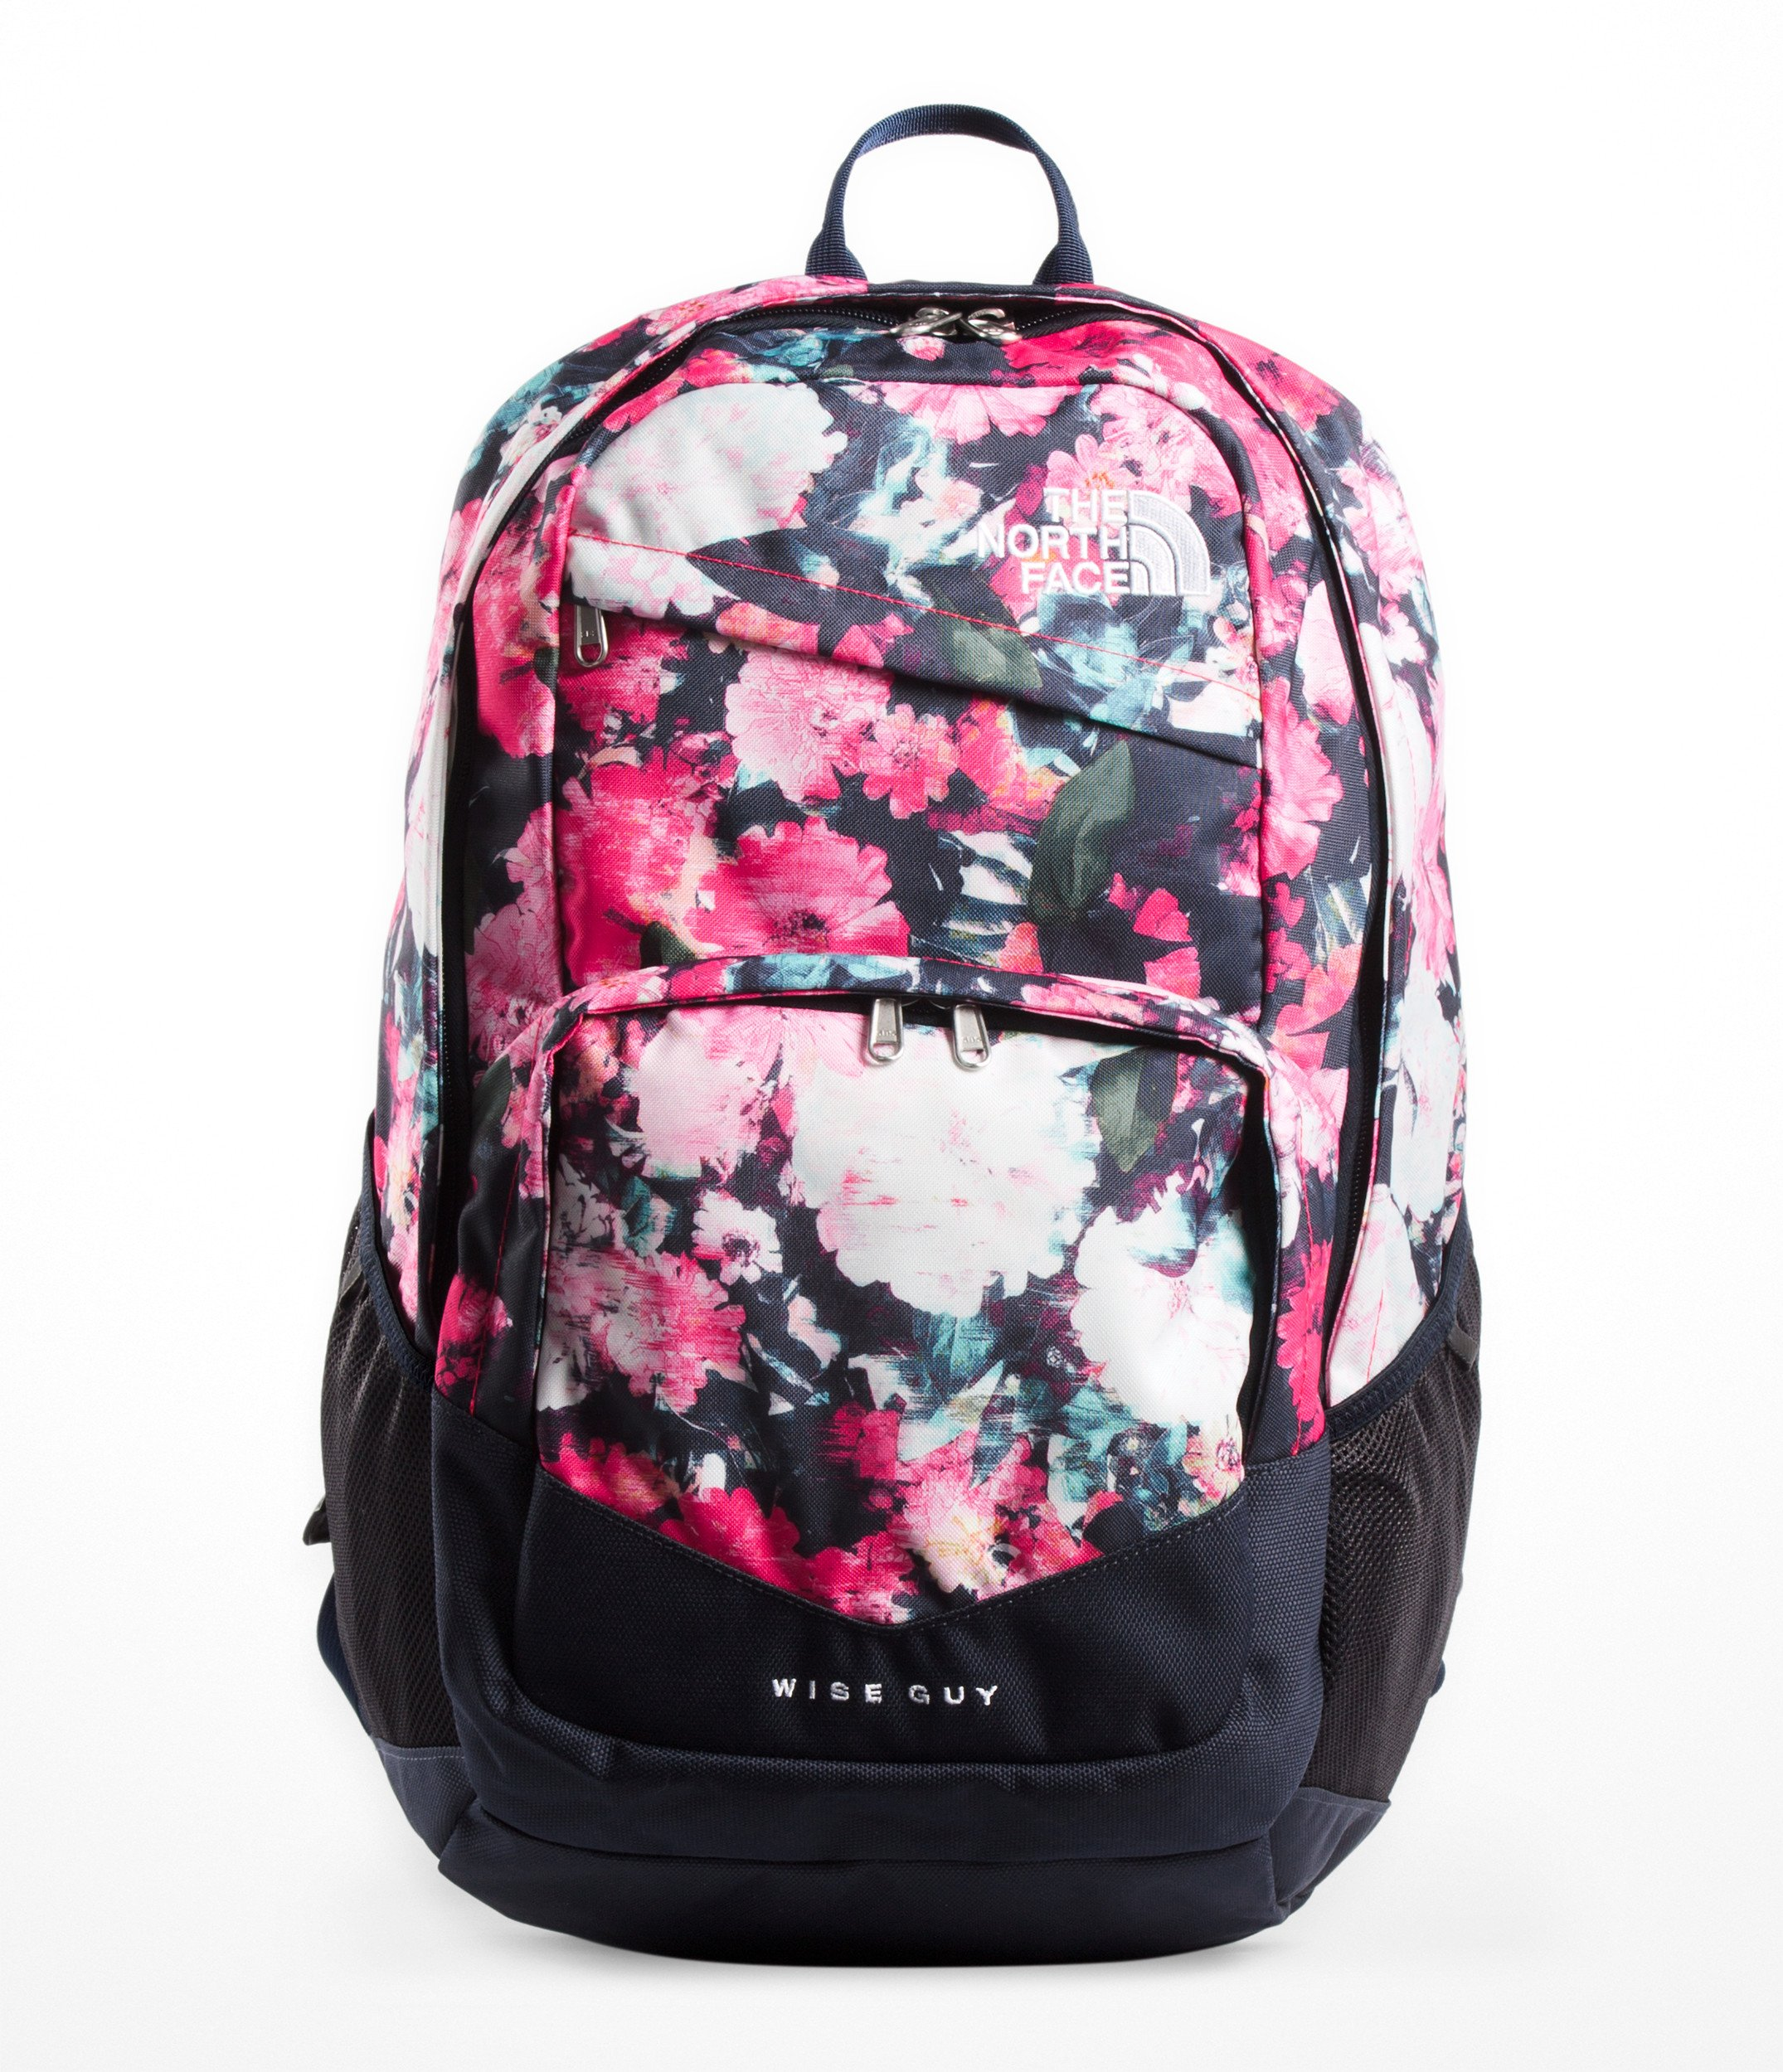 2ed0404b1 The North Face Wise Guy Backpack, Atomic Pink Digi Floral Print/Urban Navy